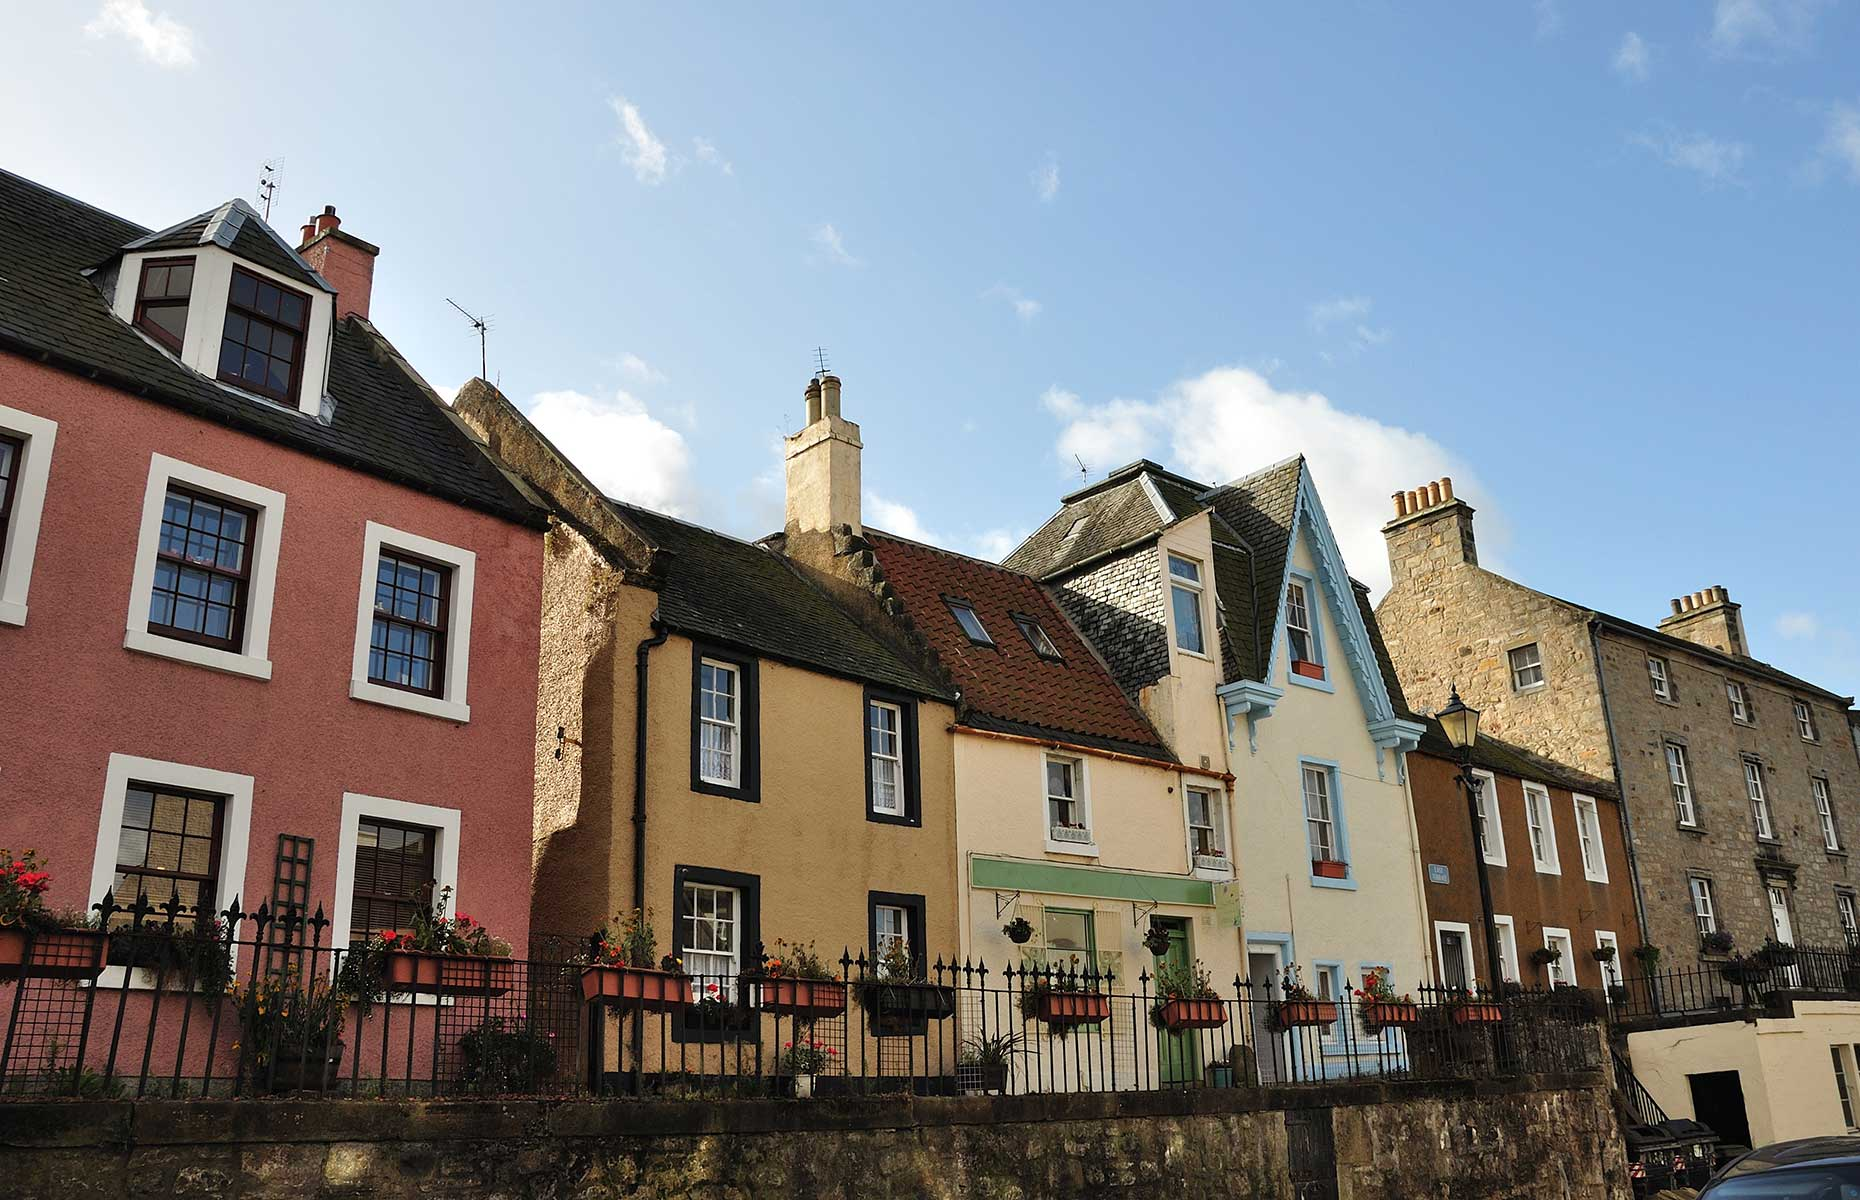 South Queensferry High Street with picturesque historic buildings (Image: jean morrison/Shutterstock)